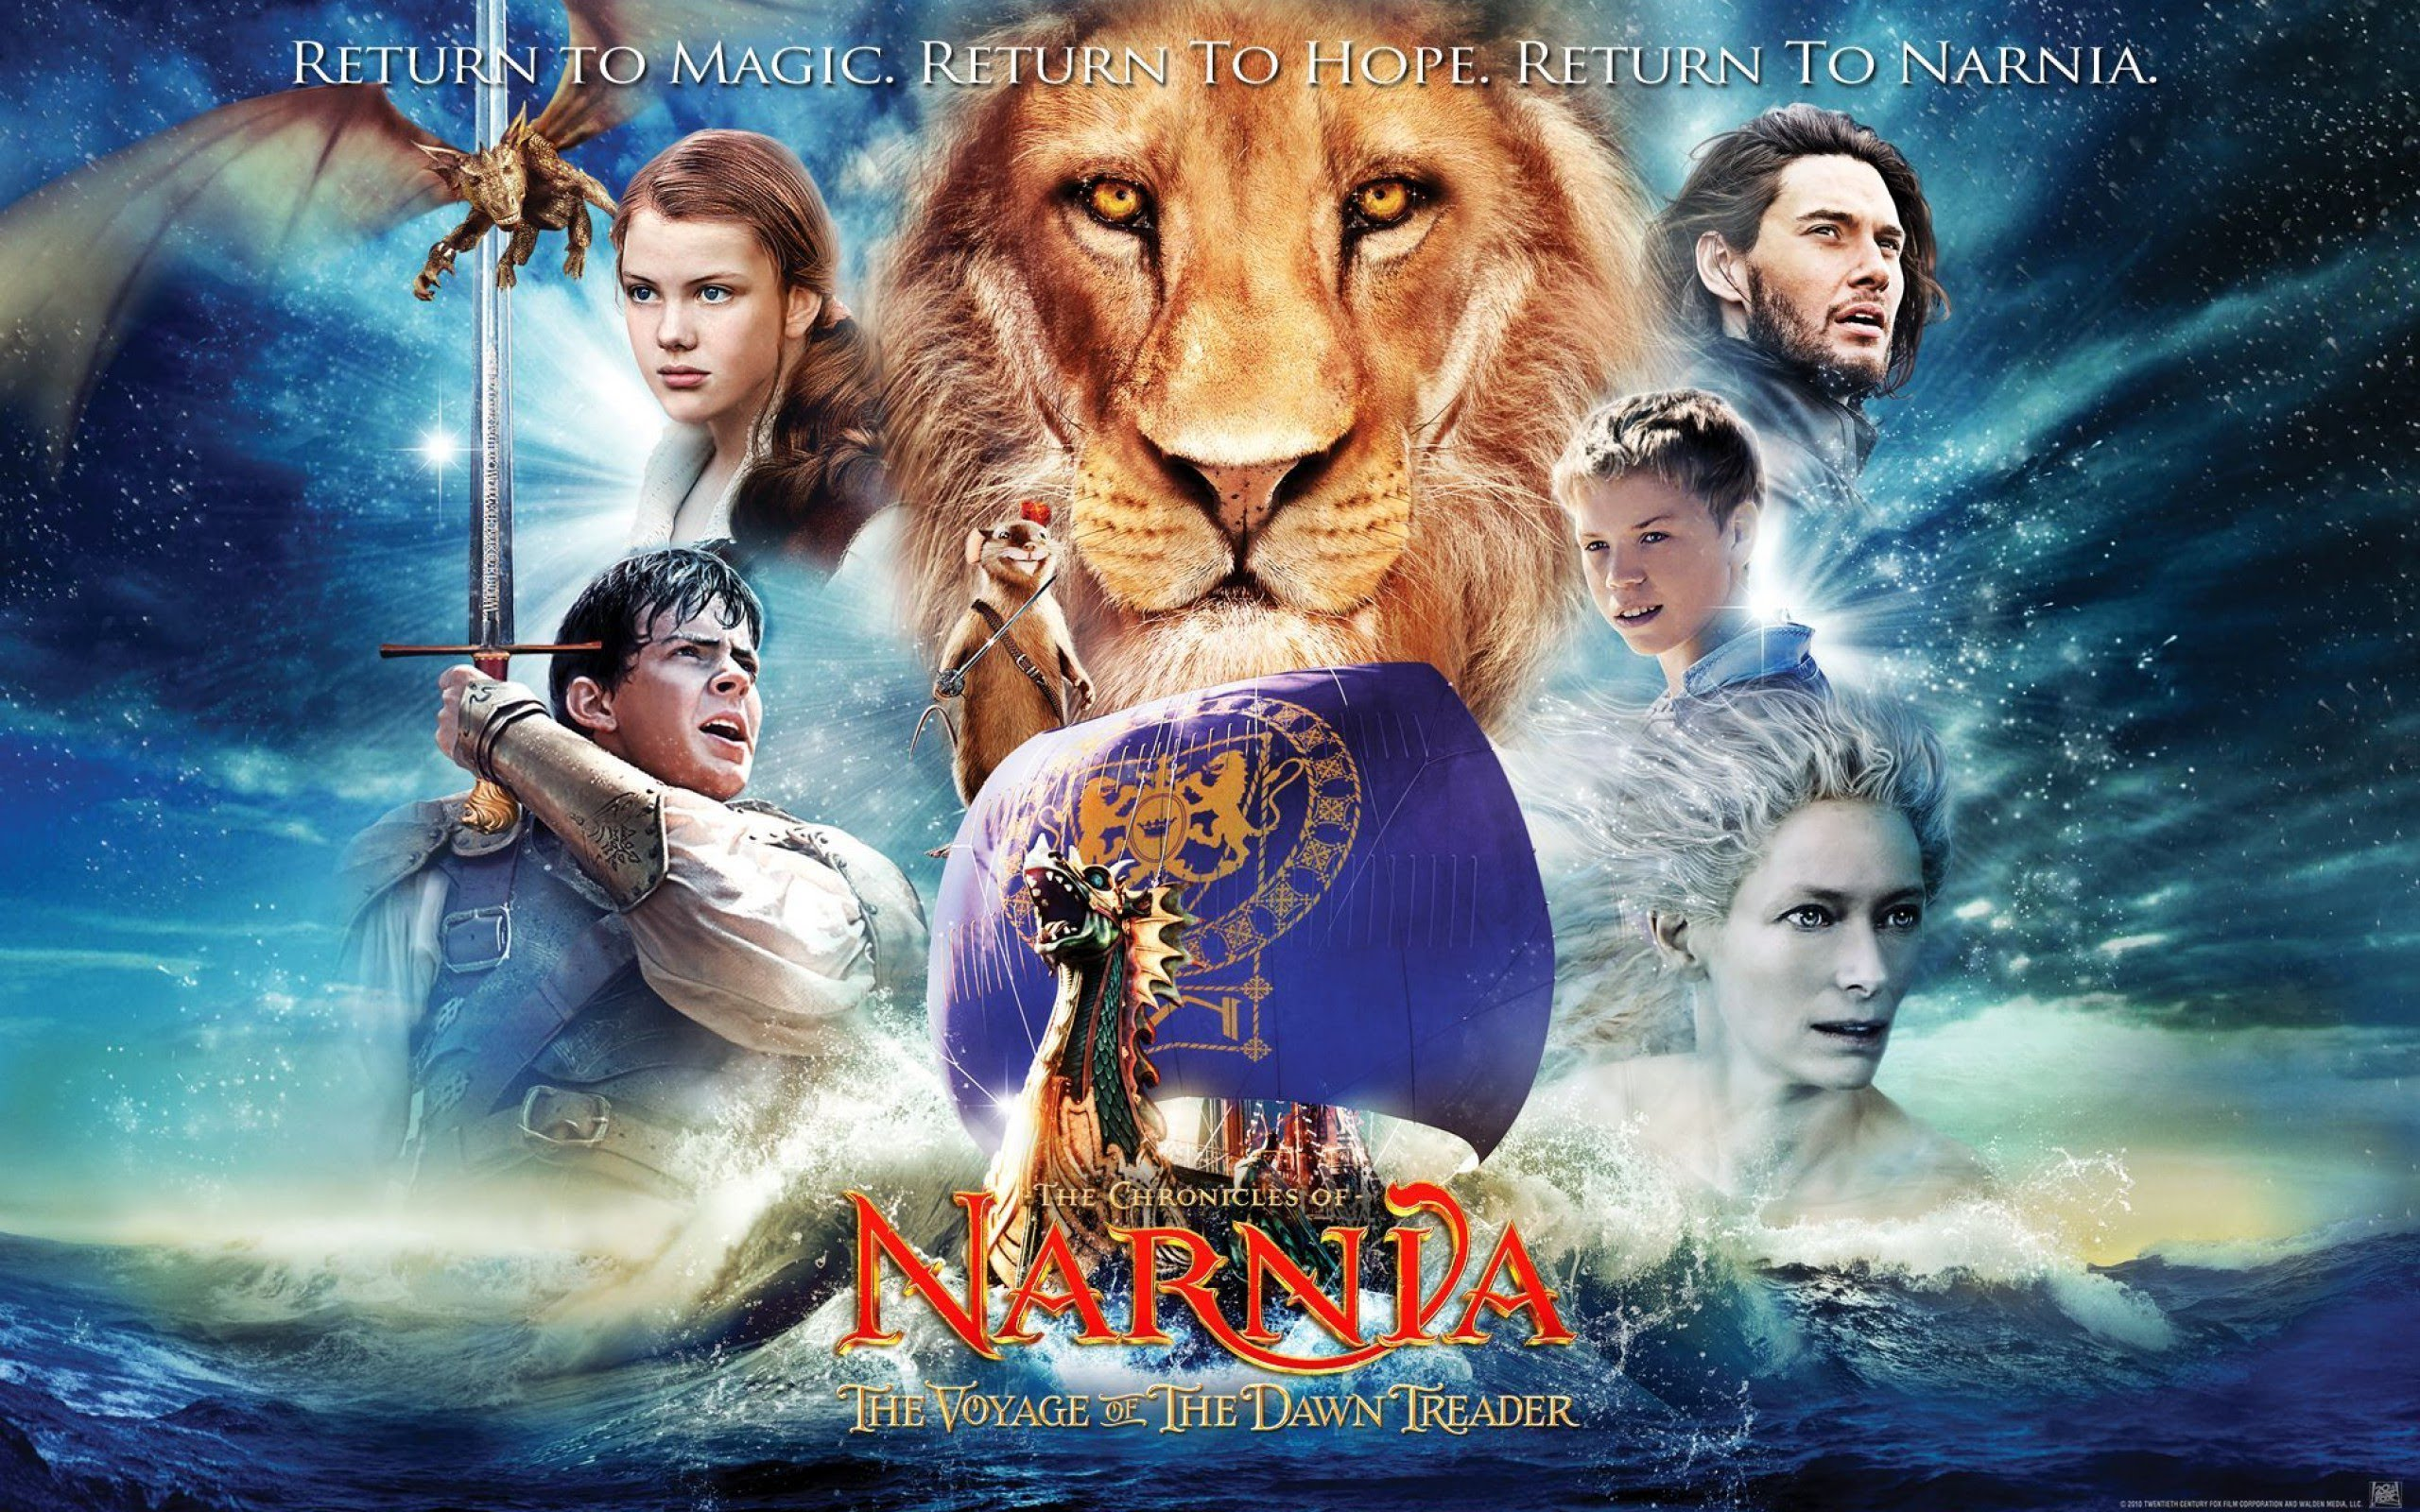 2560x1600 - The Chronicles of Narnia: The Voyage of the Dawn Treader Wallpapers 9